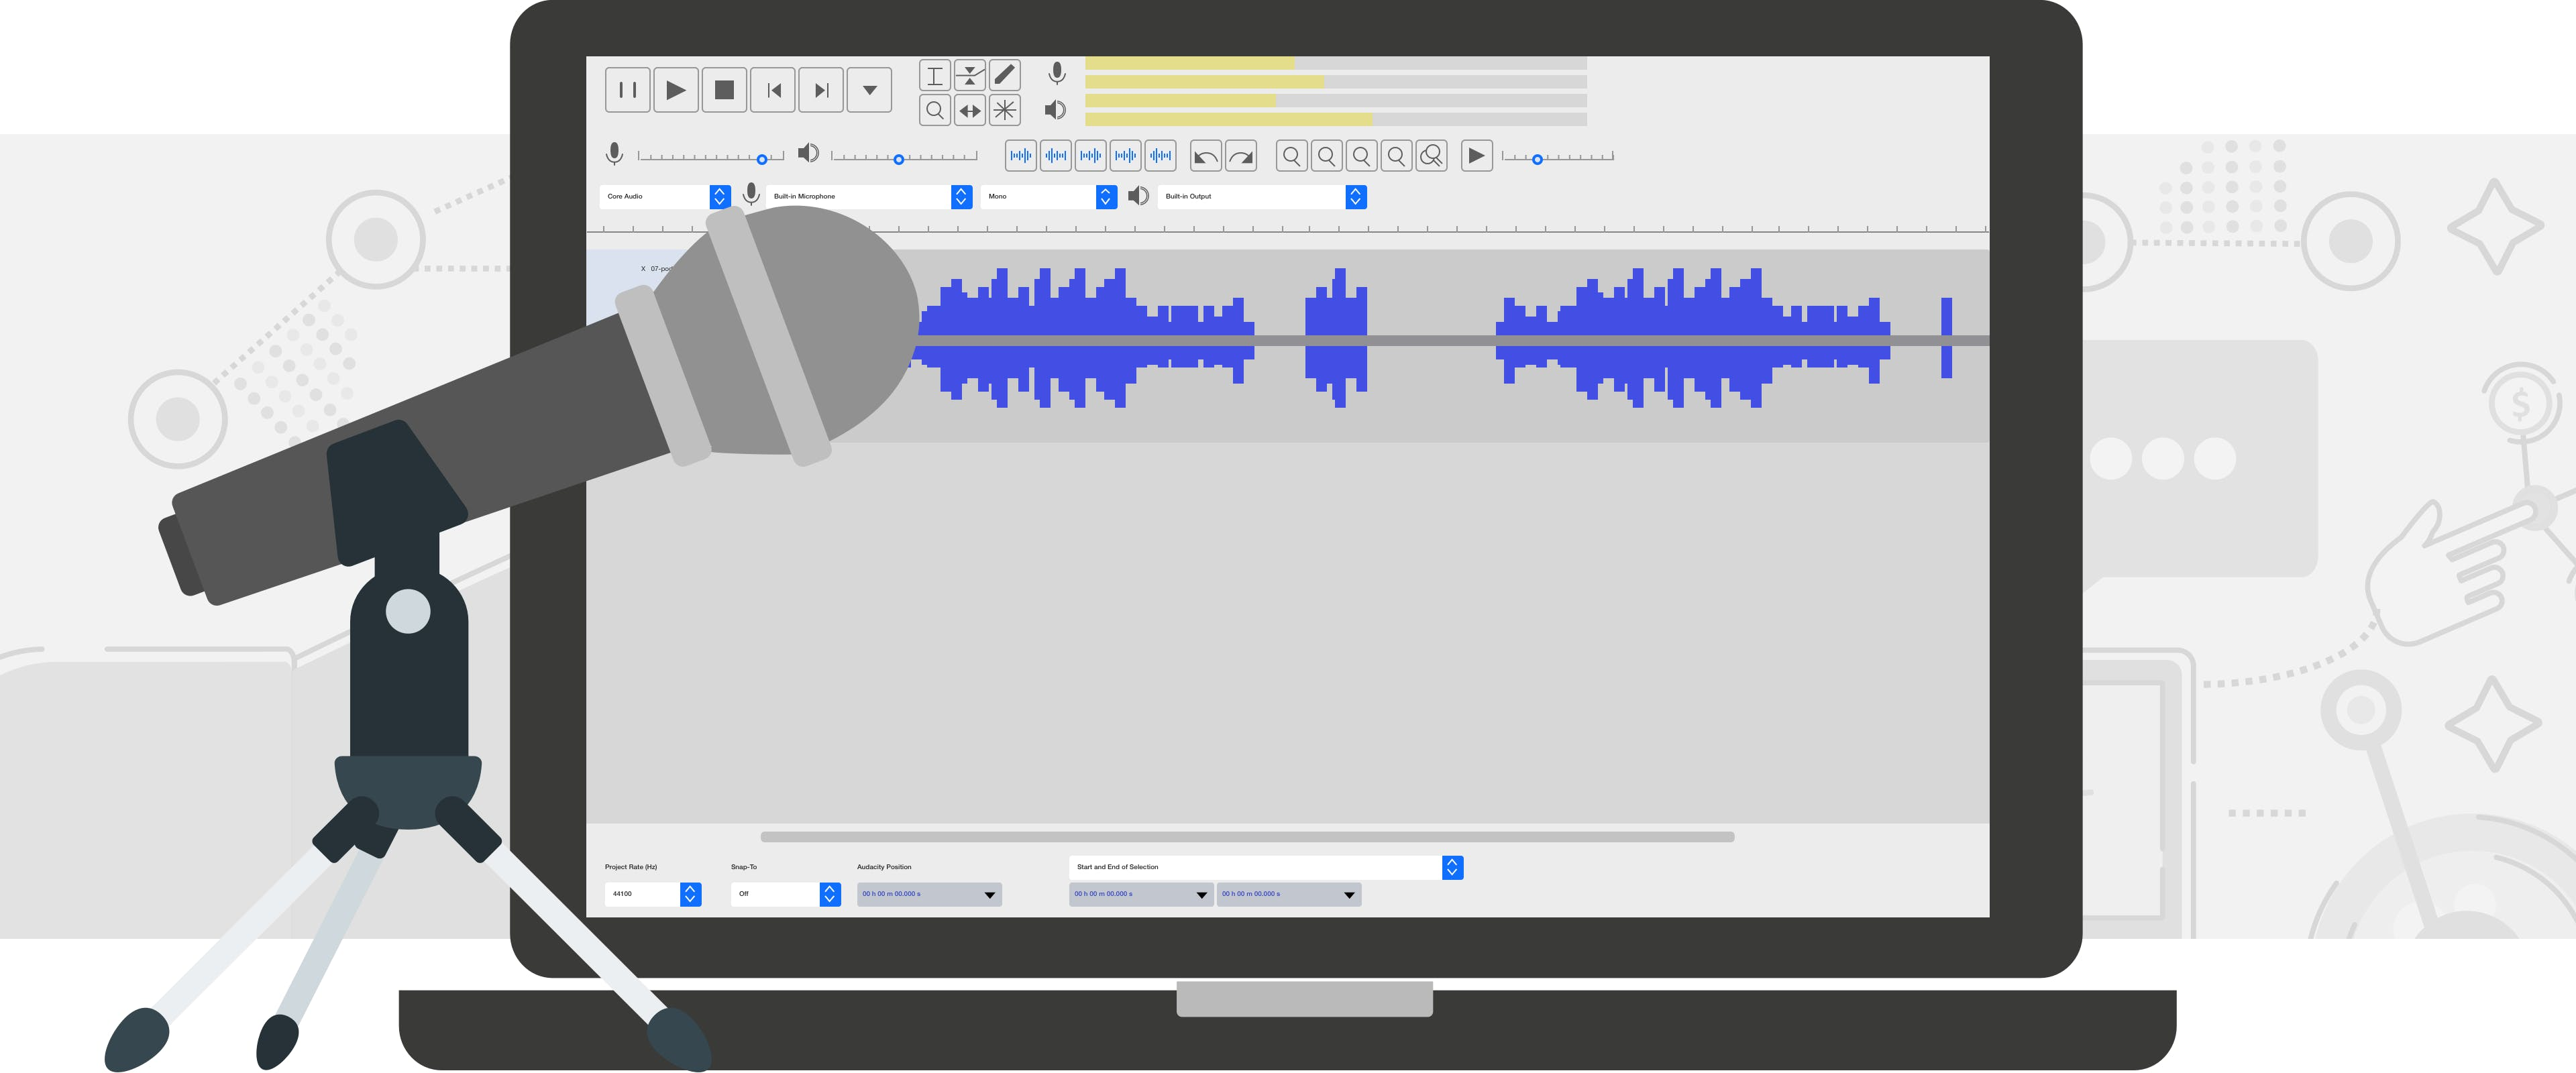 Microphone in front of a lap top with a waveform on the screen